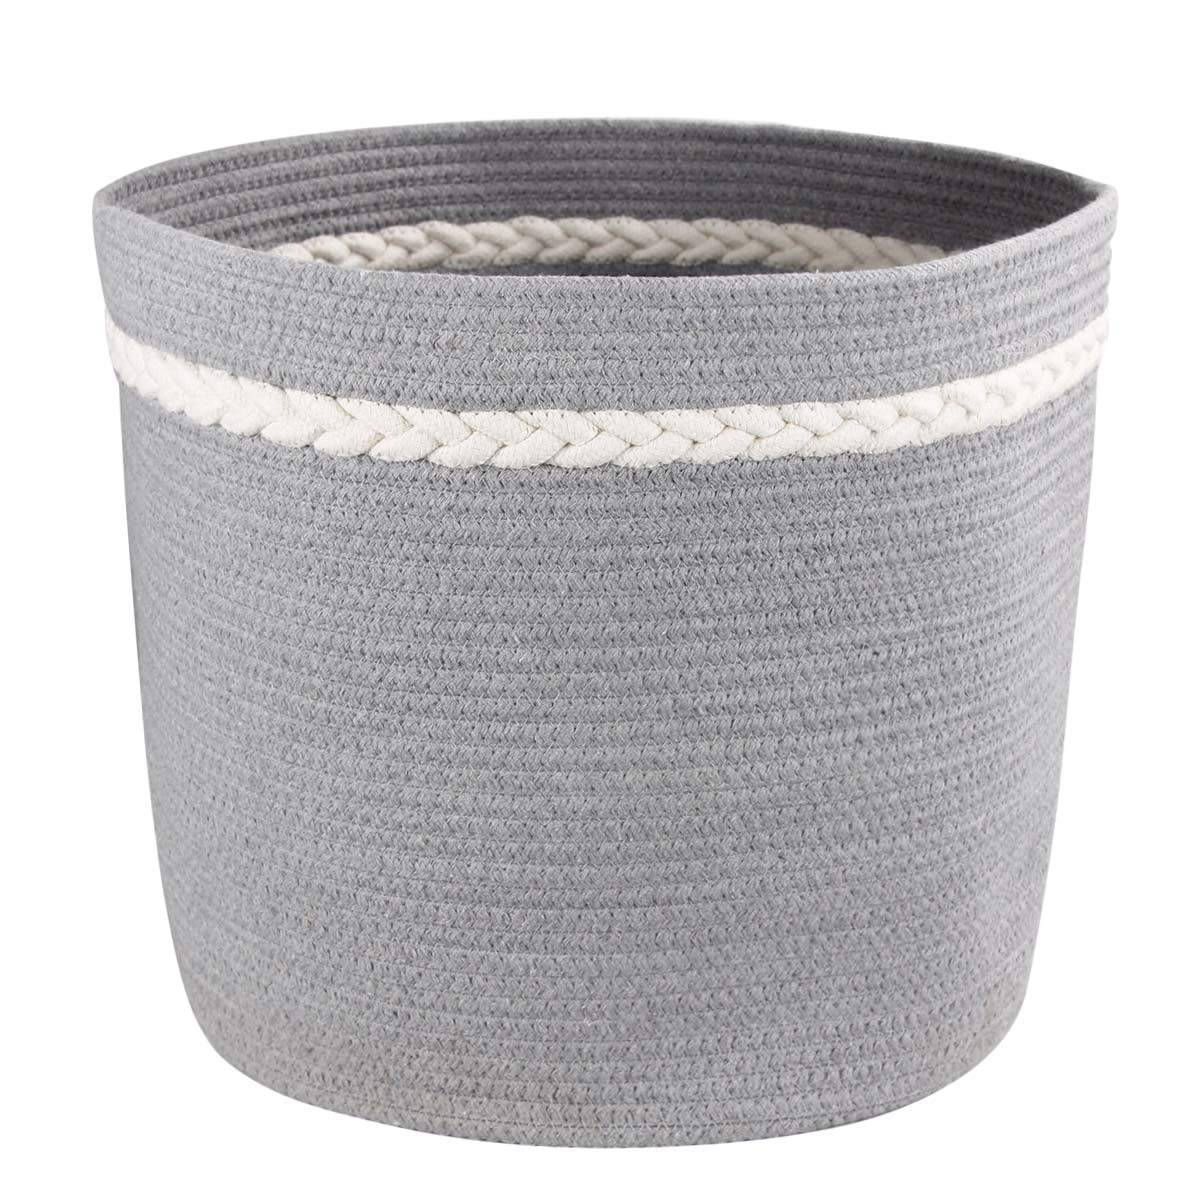 Large Storage Basket - Woven Cotton Basket for Kid's Toys - Cotton Rope Basket with Handles- Decorative Blanket Baskets for Living Room -17×14.5 inch